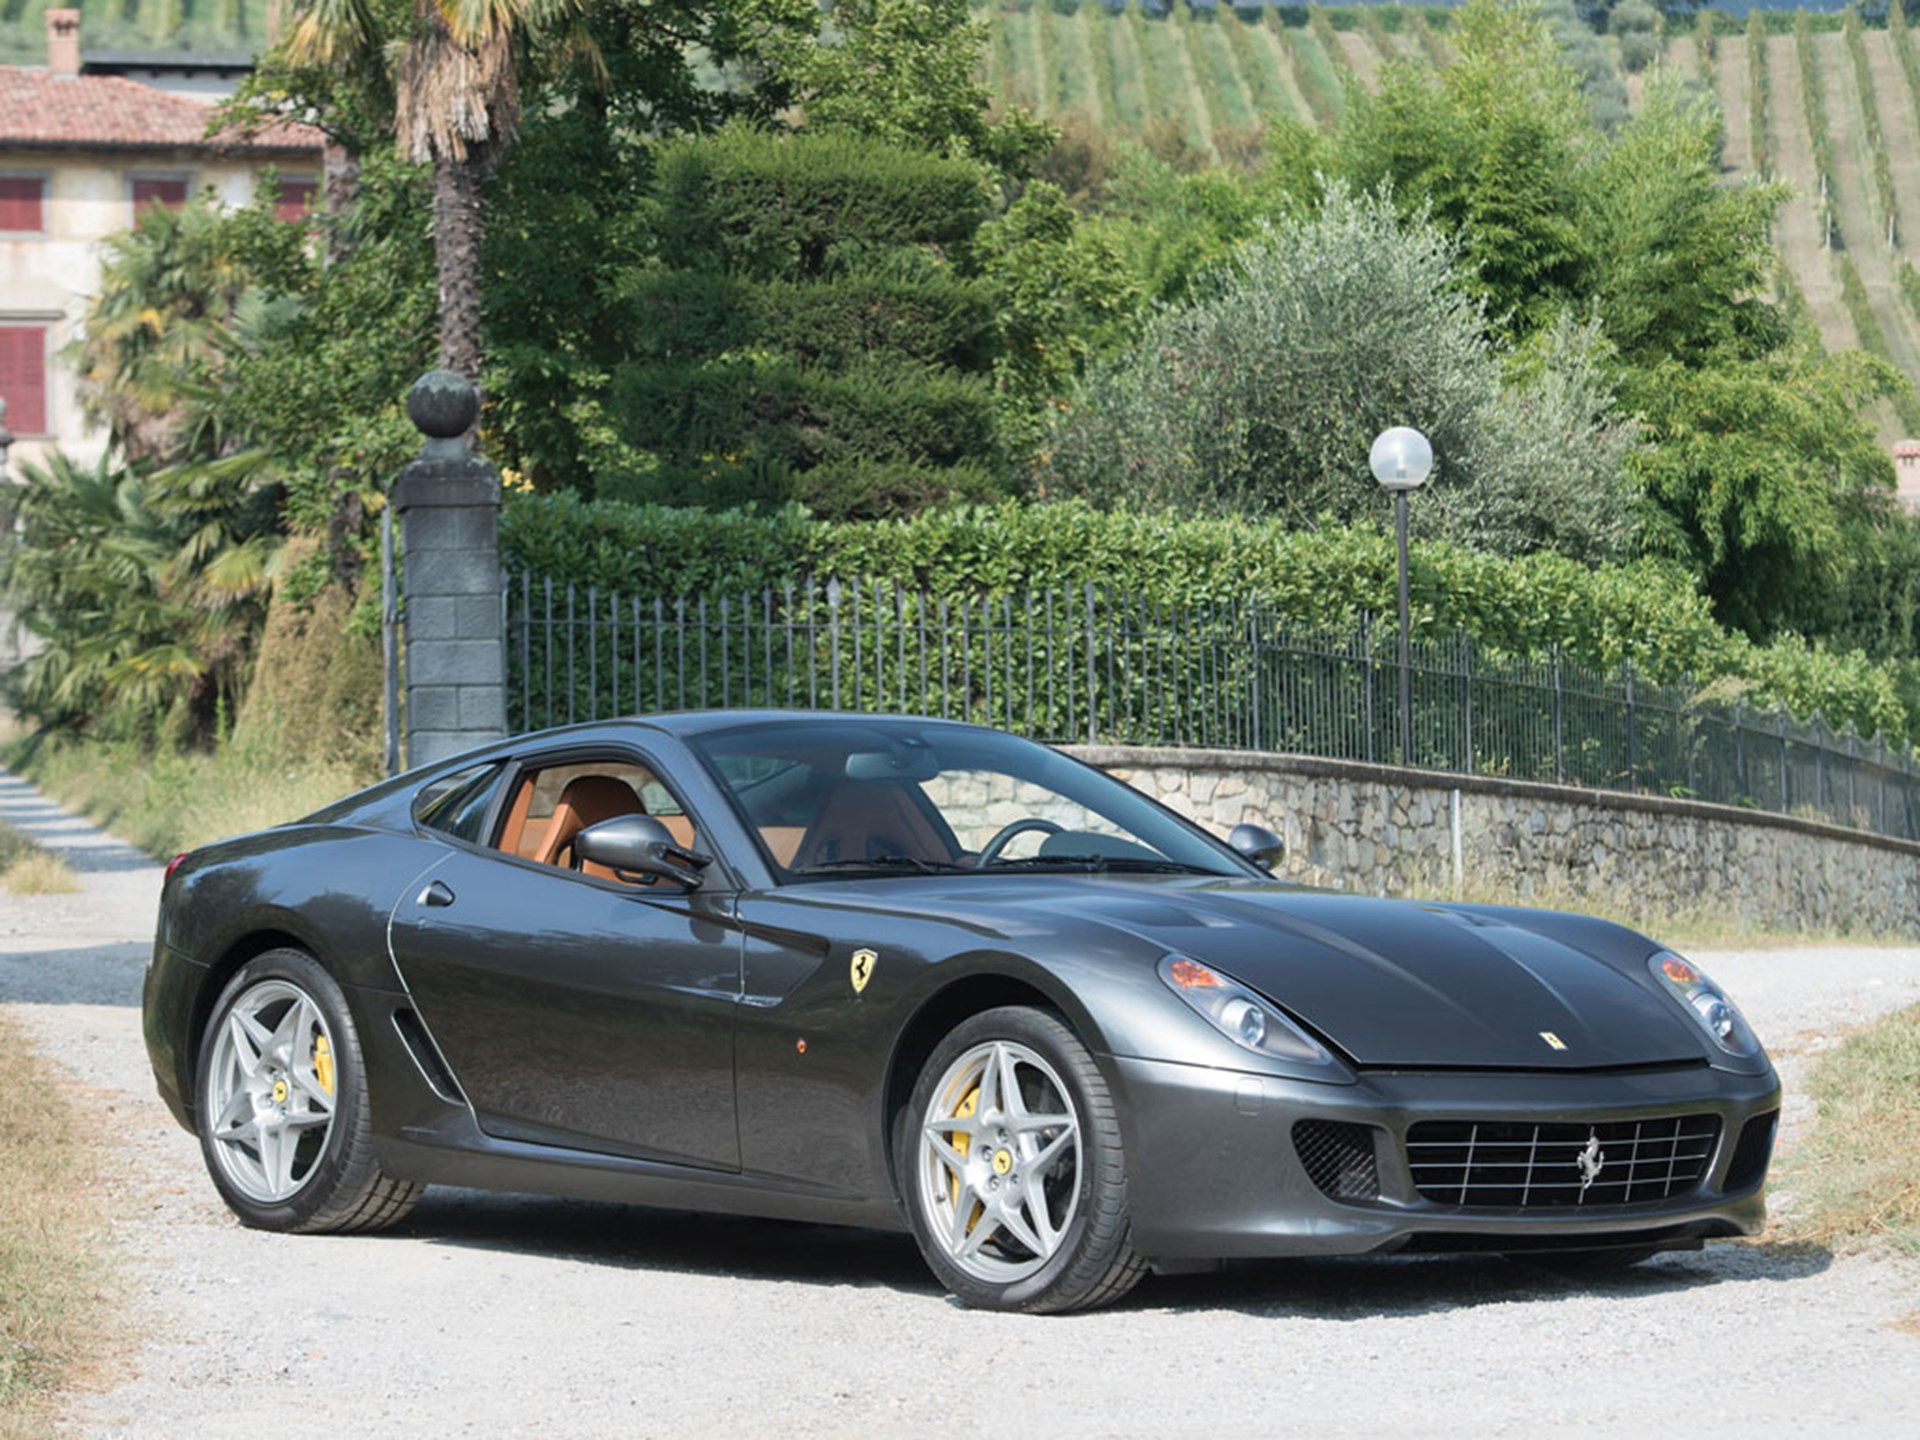 2007 Ferrari 599 GTB Fiorano (Manual)